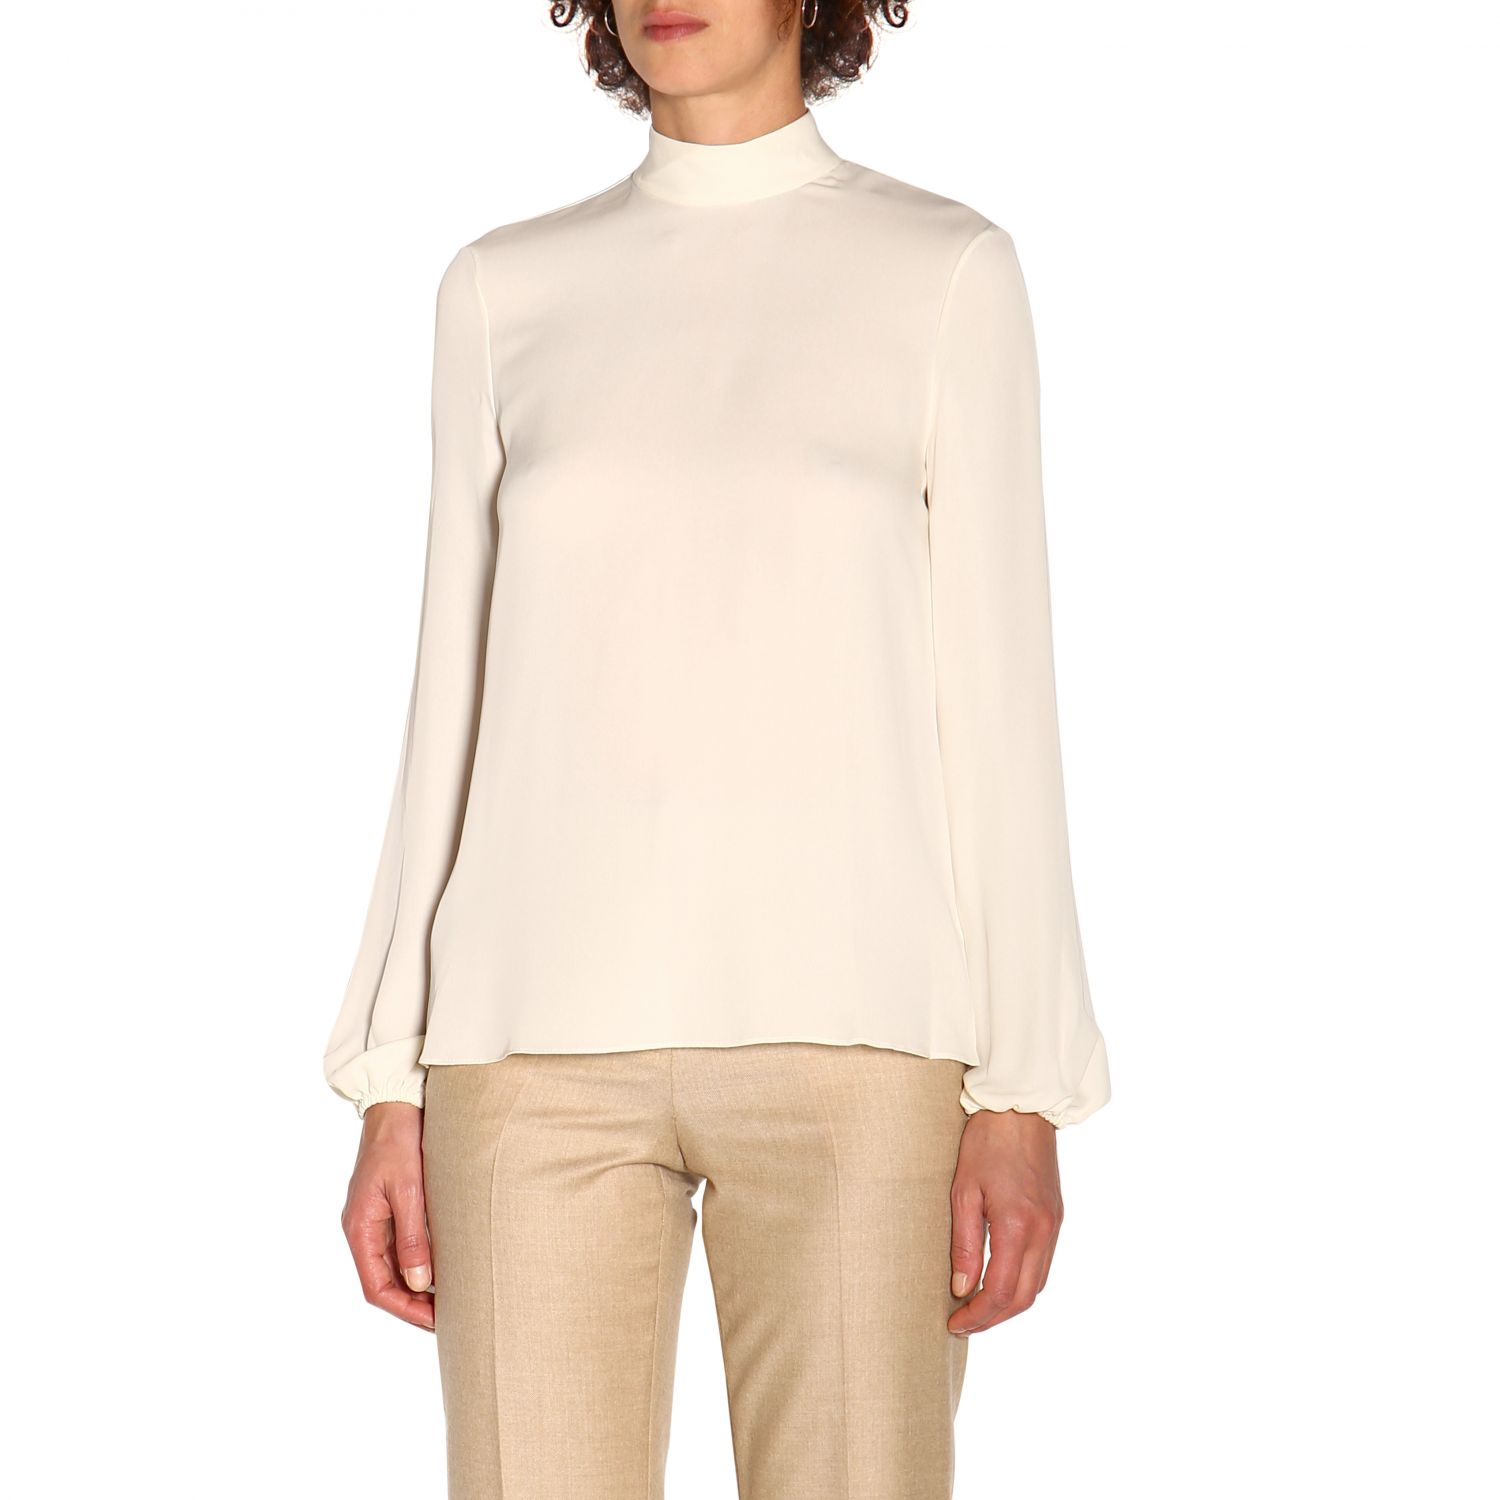 T-shirt women Theory ivory 4